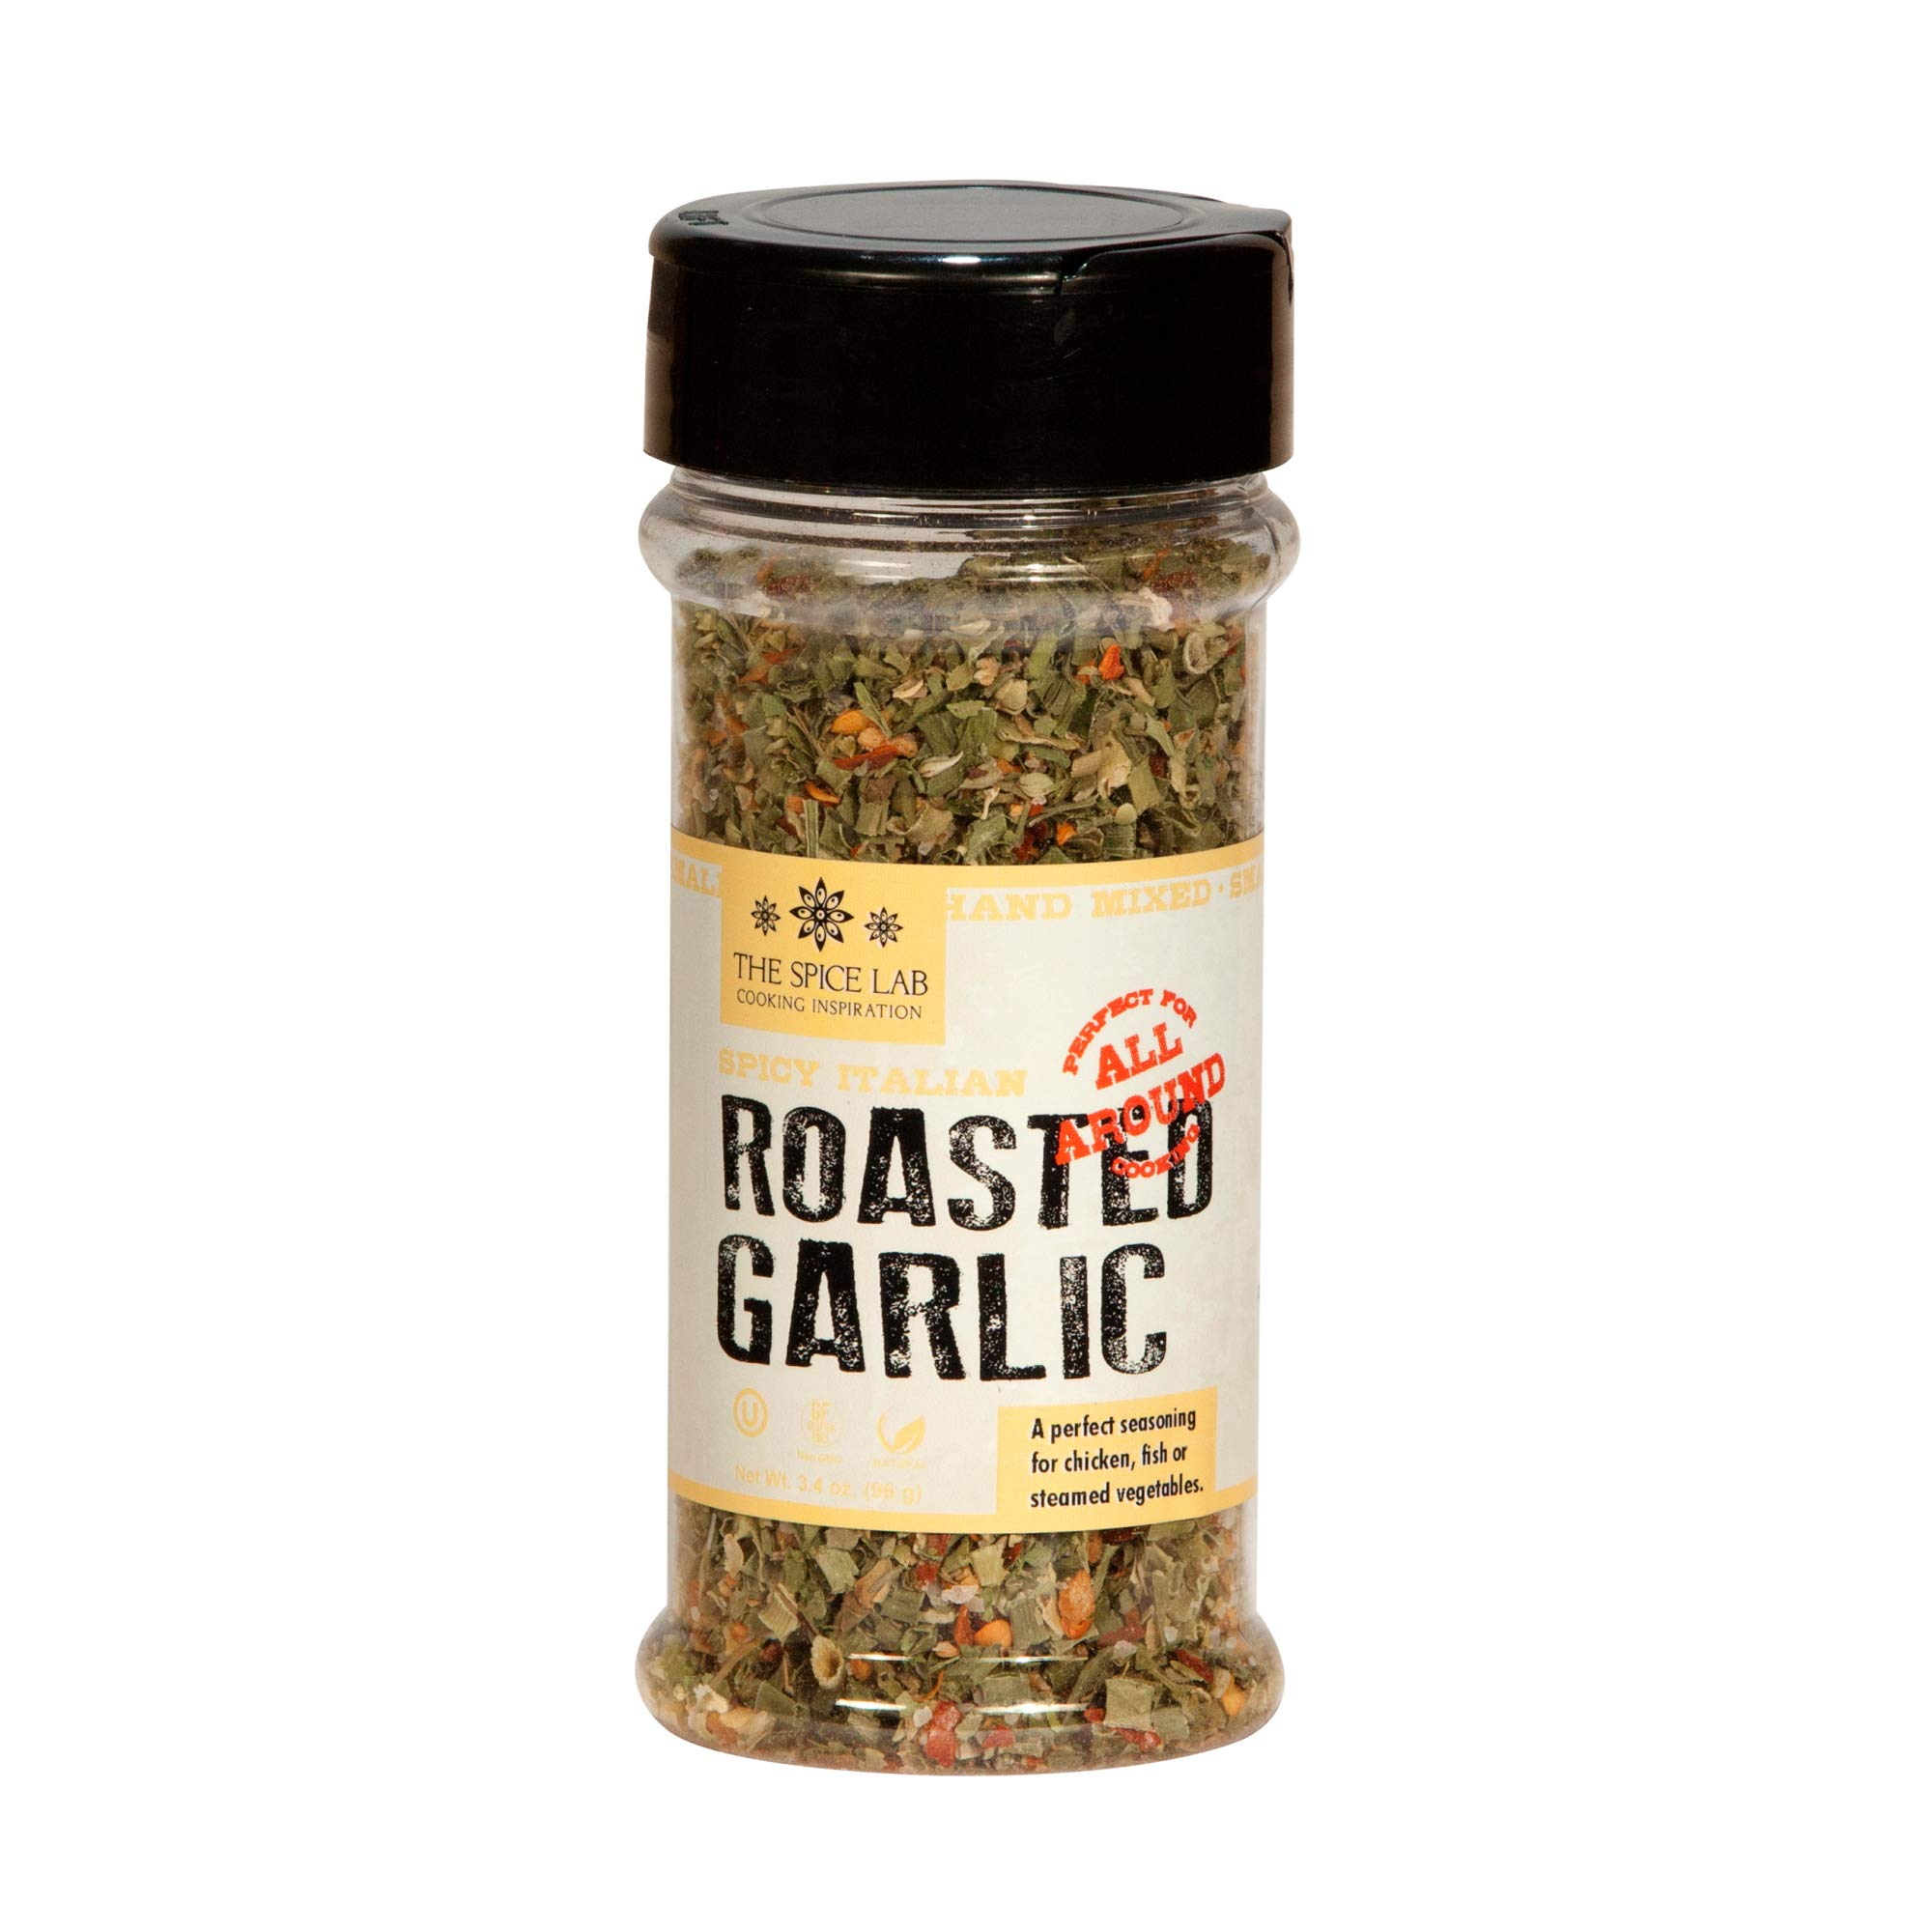 The Spice Lab - Spicy Roasted Garlic Italian Seasoning Blend - Spice Shaker Jar – 3 oz - Excellent Pasta Sauce or BBQ Grill Seasoning - Gluten Free All Natural – Spicy Italian Blend No 7606